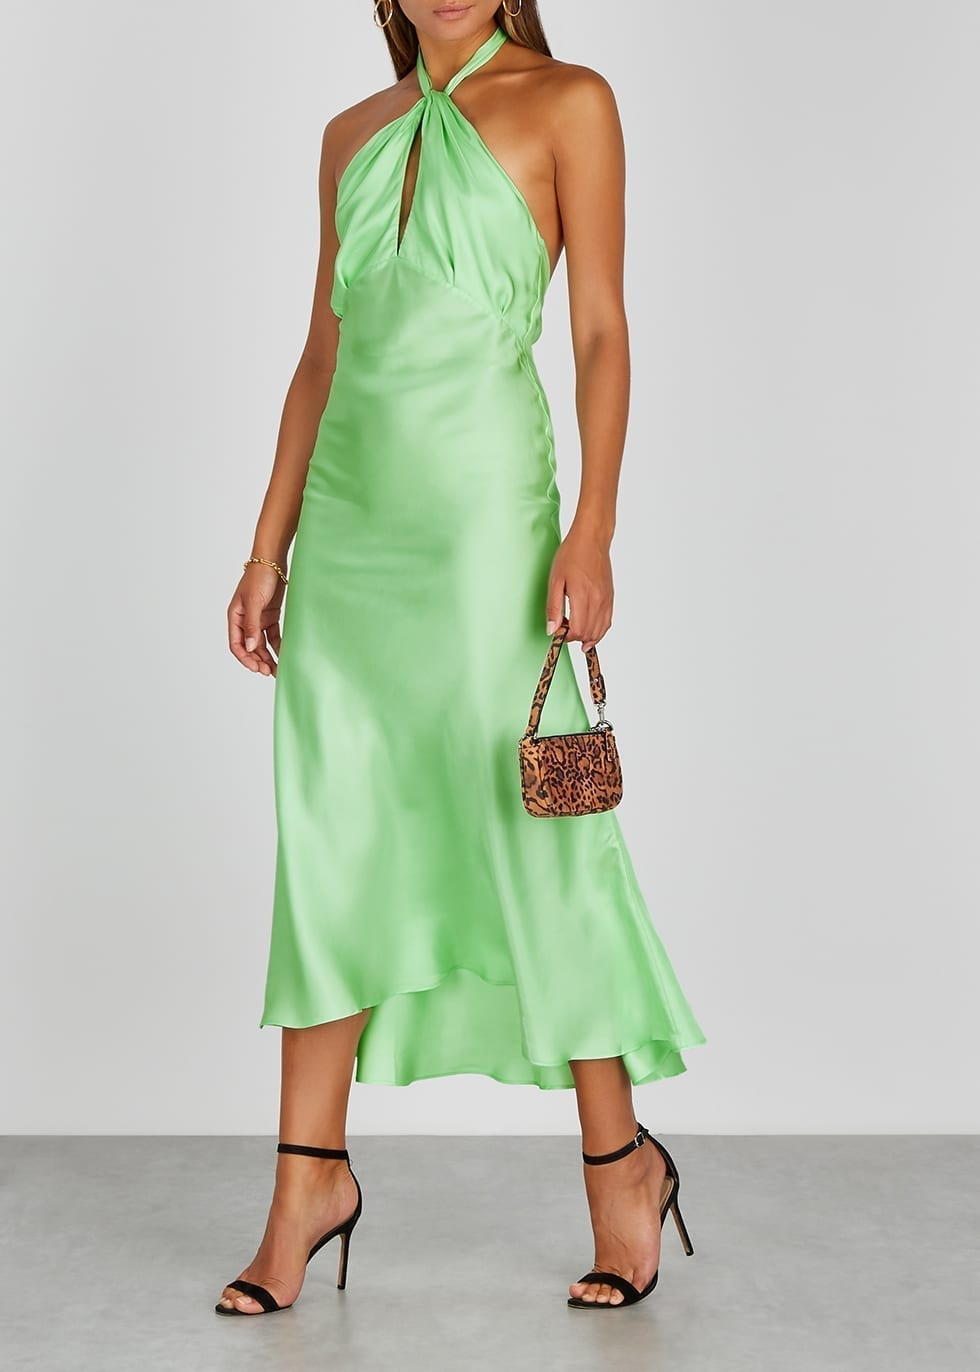 MAGGIE MARILYN She's Got Her Groove Back Silk Midi Dress